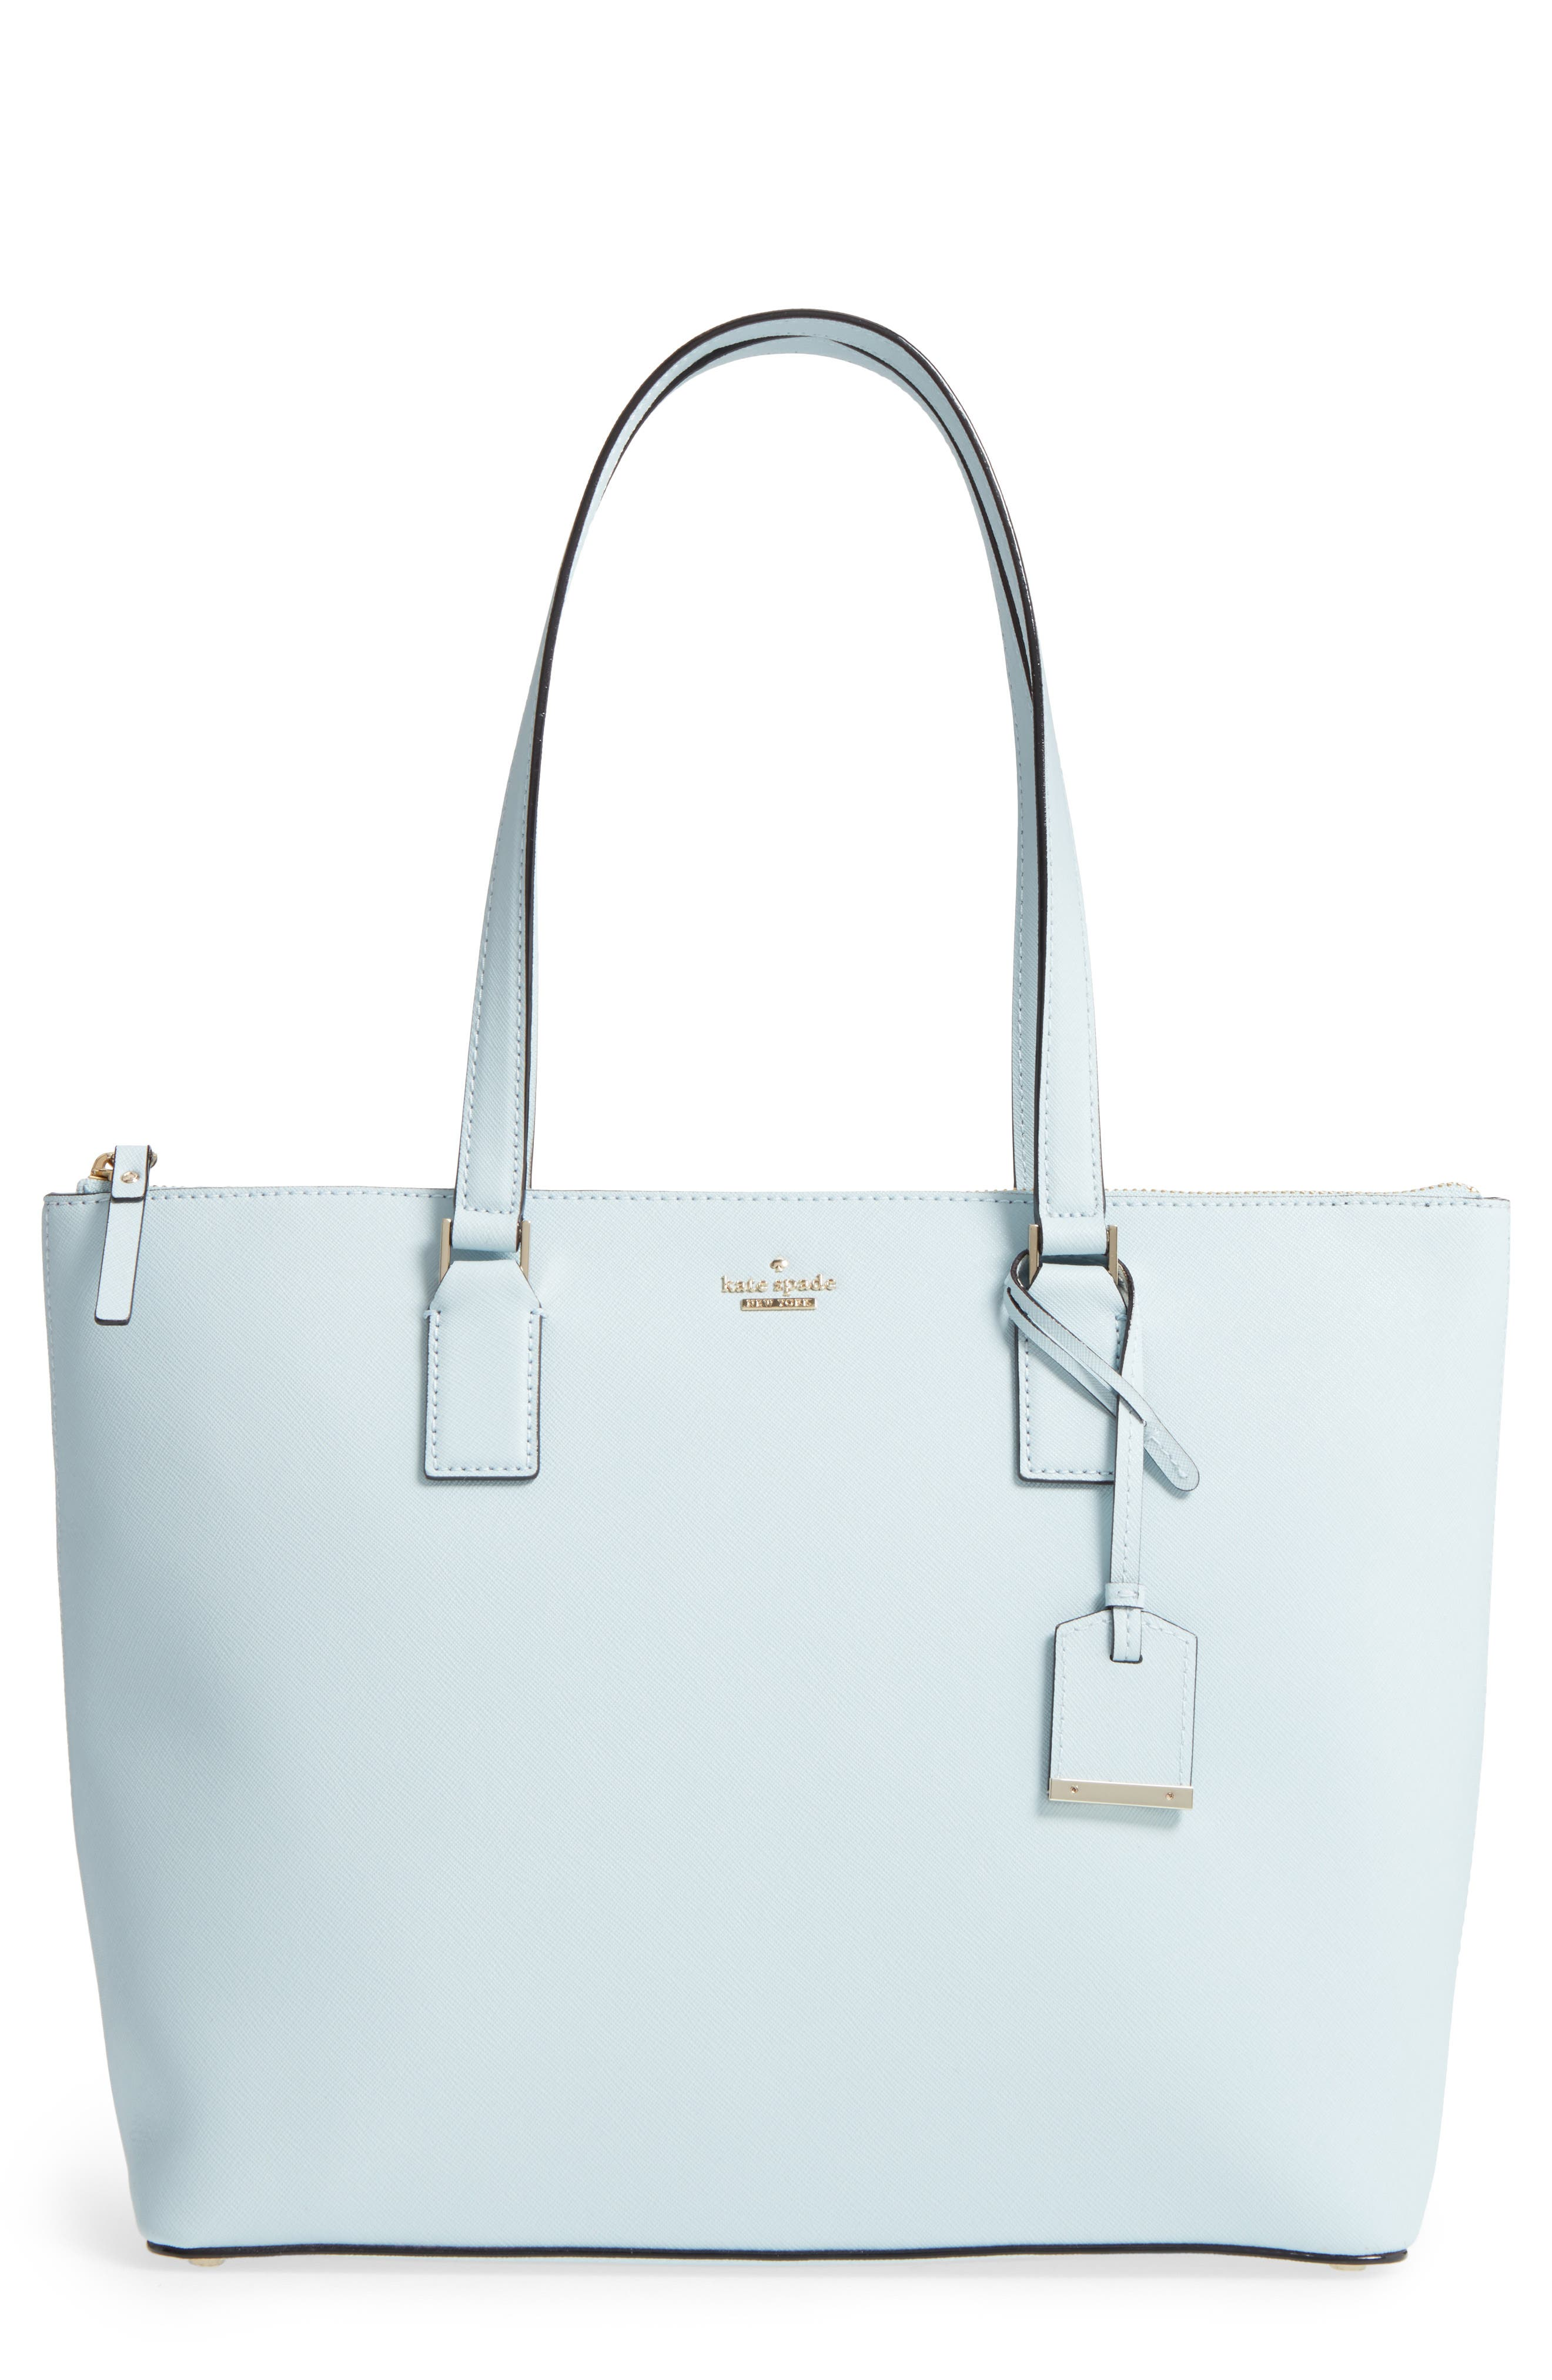 Main Image - kate spade new york 'cameron street - lucie' tote